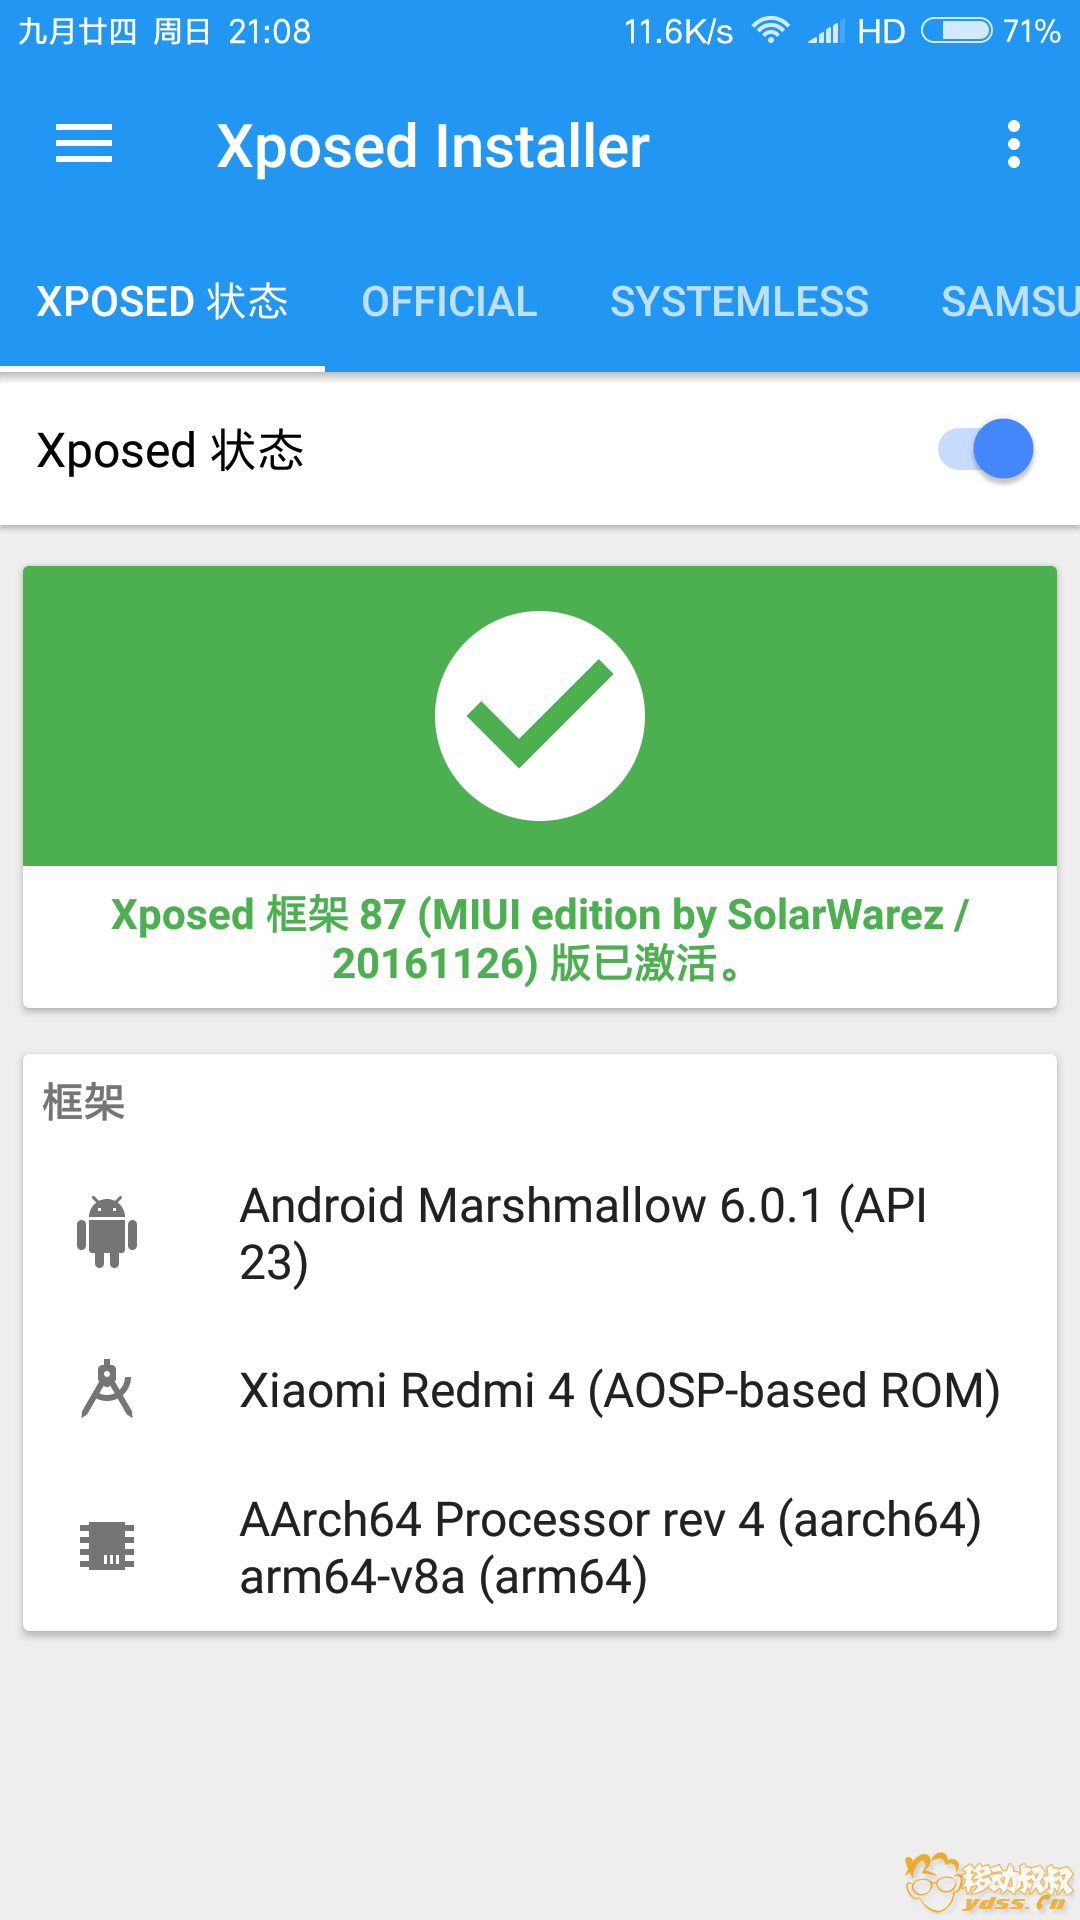 Screenshot_2017-11-12-21-08-40-288_de.robv.android.xposed.installer.png